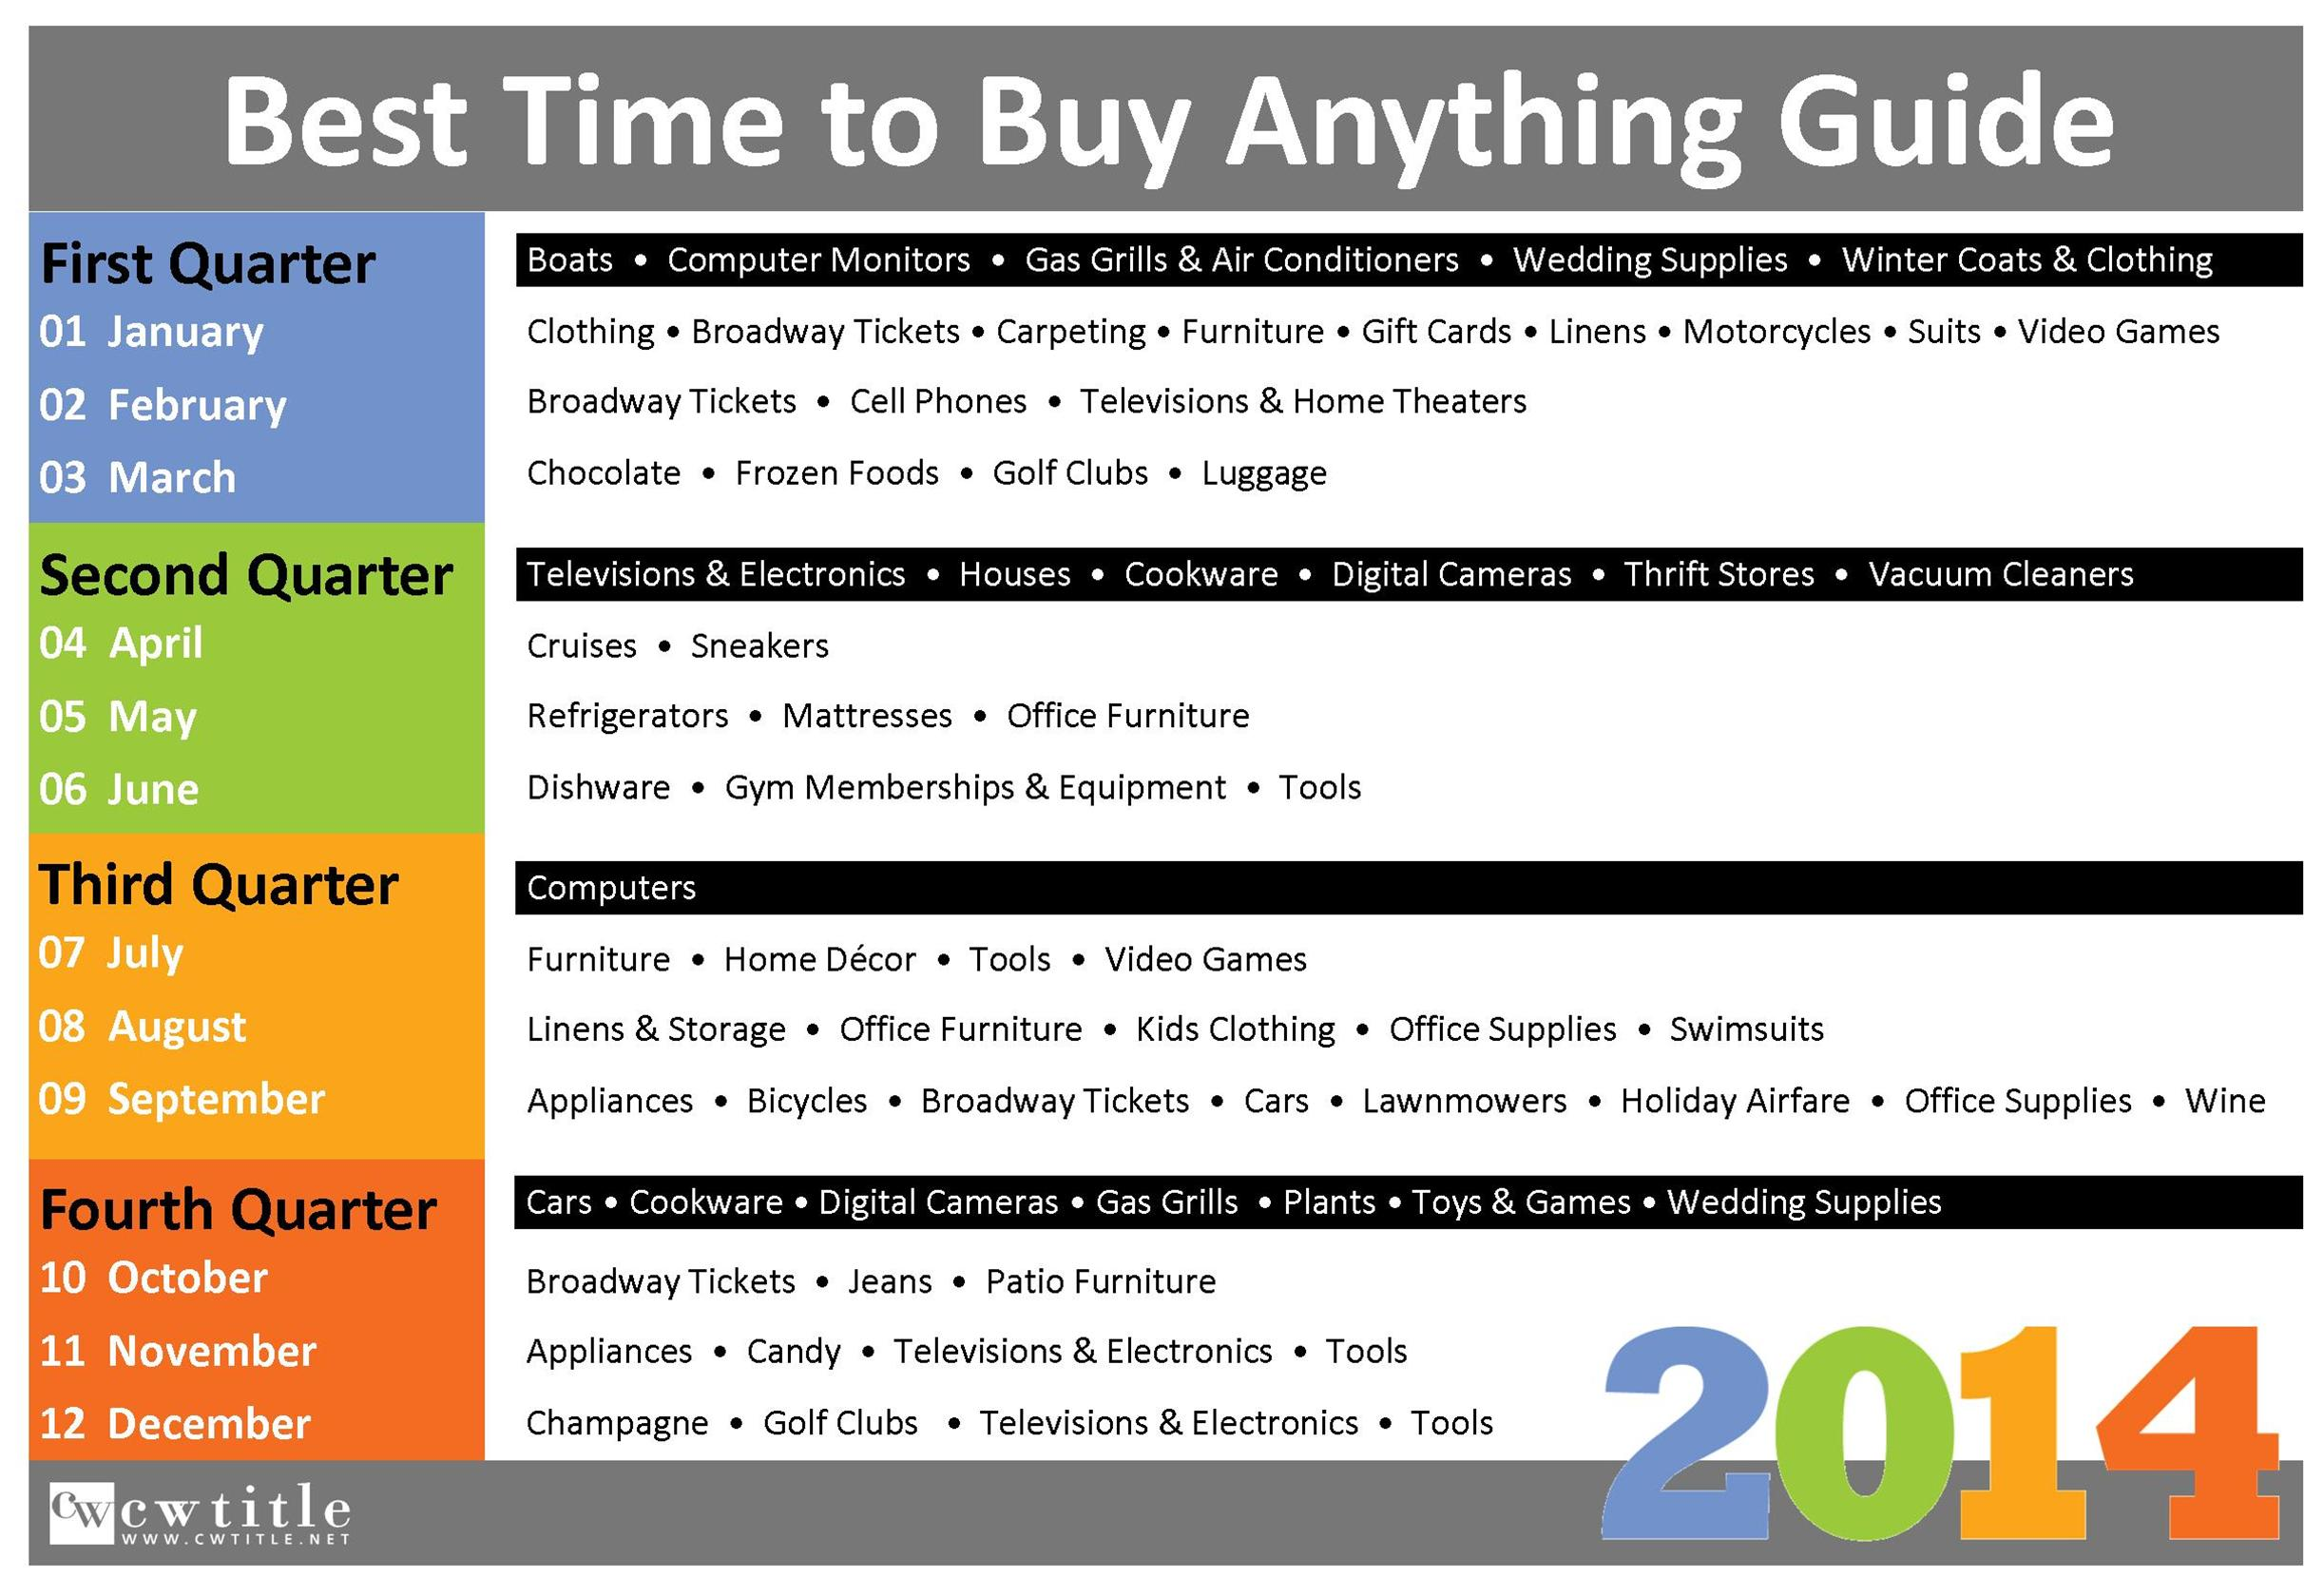 Best Time to Buy ANYTHING in 2014 CW TITLE Our Customers are